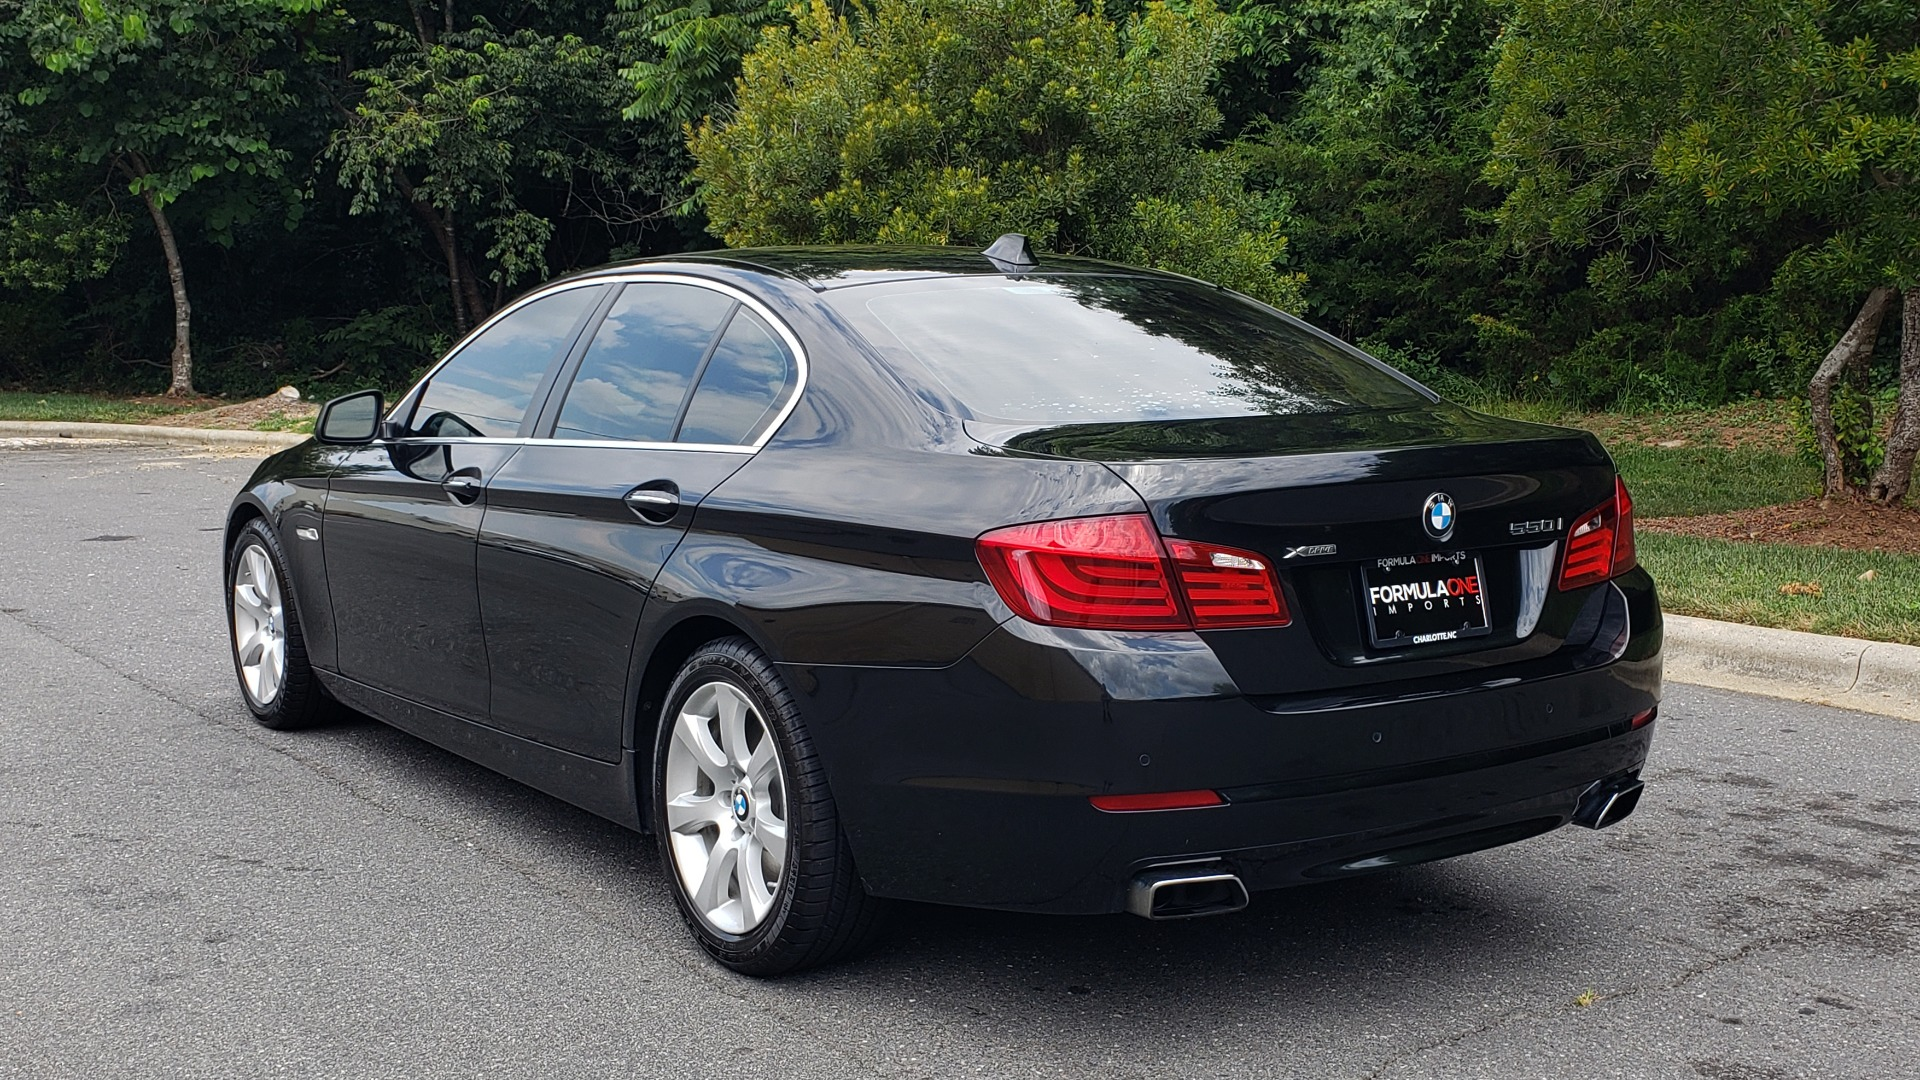 Used 2013 BMW 5 SERIES 550I XDRIVE LUX PKG / EXEC / COLD WTHR / NAV / SUNROOF / REARVIEW for sale Sold at Formula Imports in Charlotte NC 28227 3